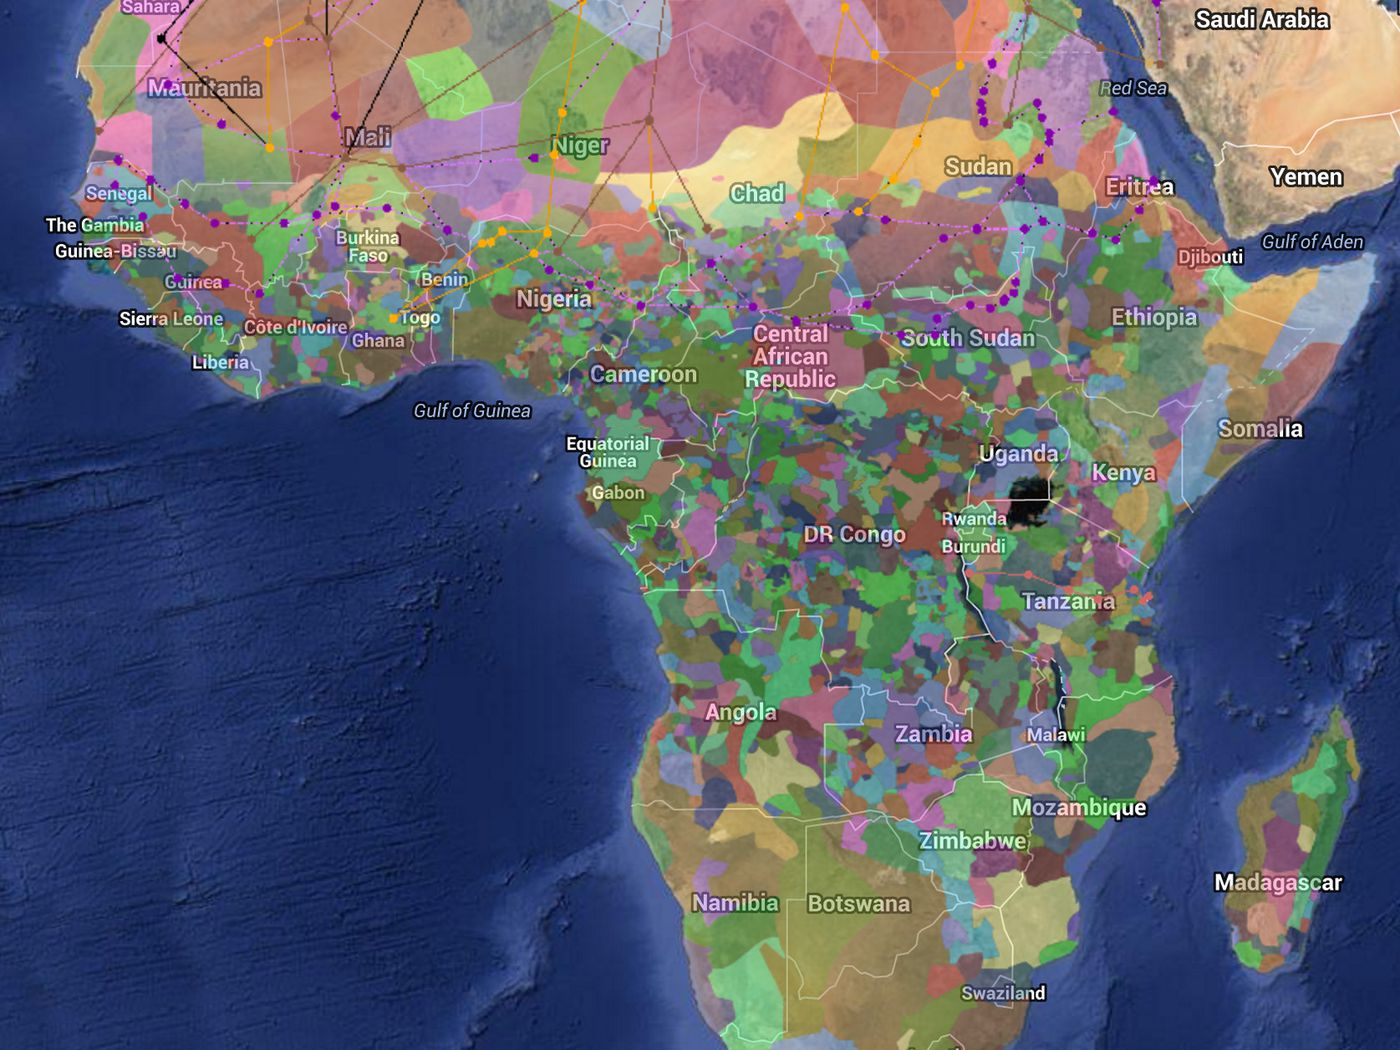 Harvard Africa Map A fascinating color coded map of Africa's diversity   Vox